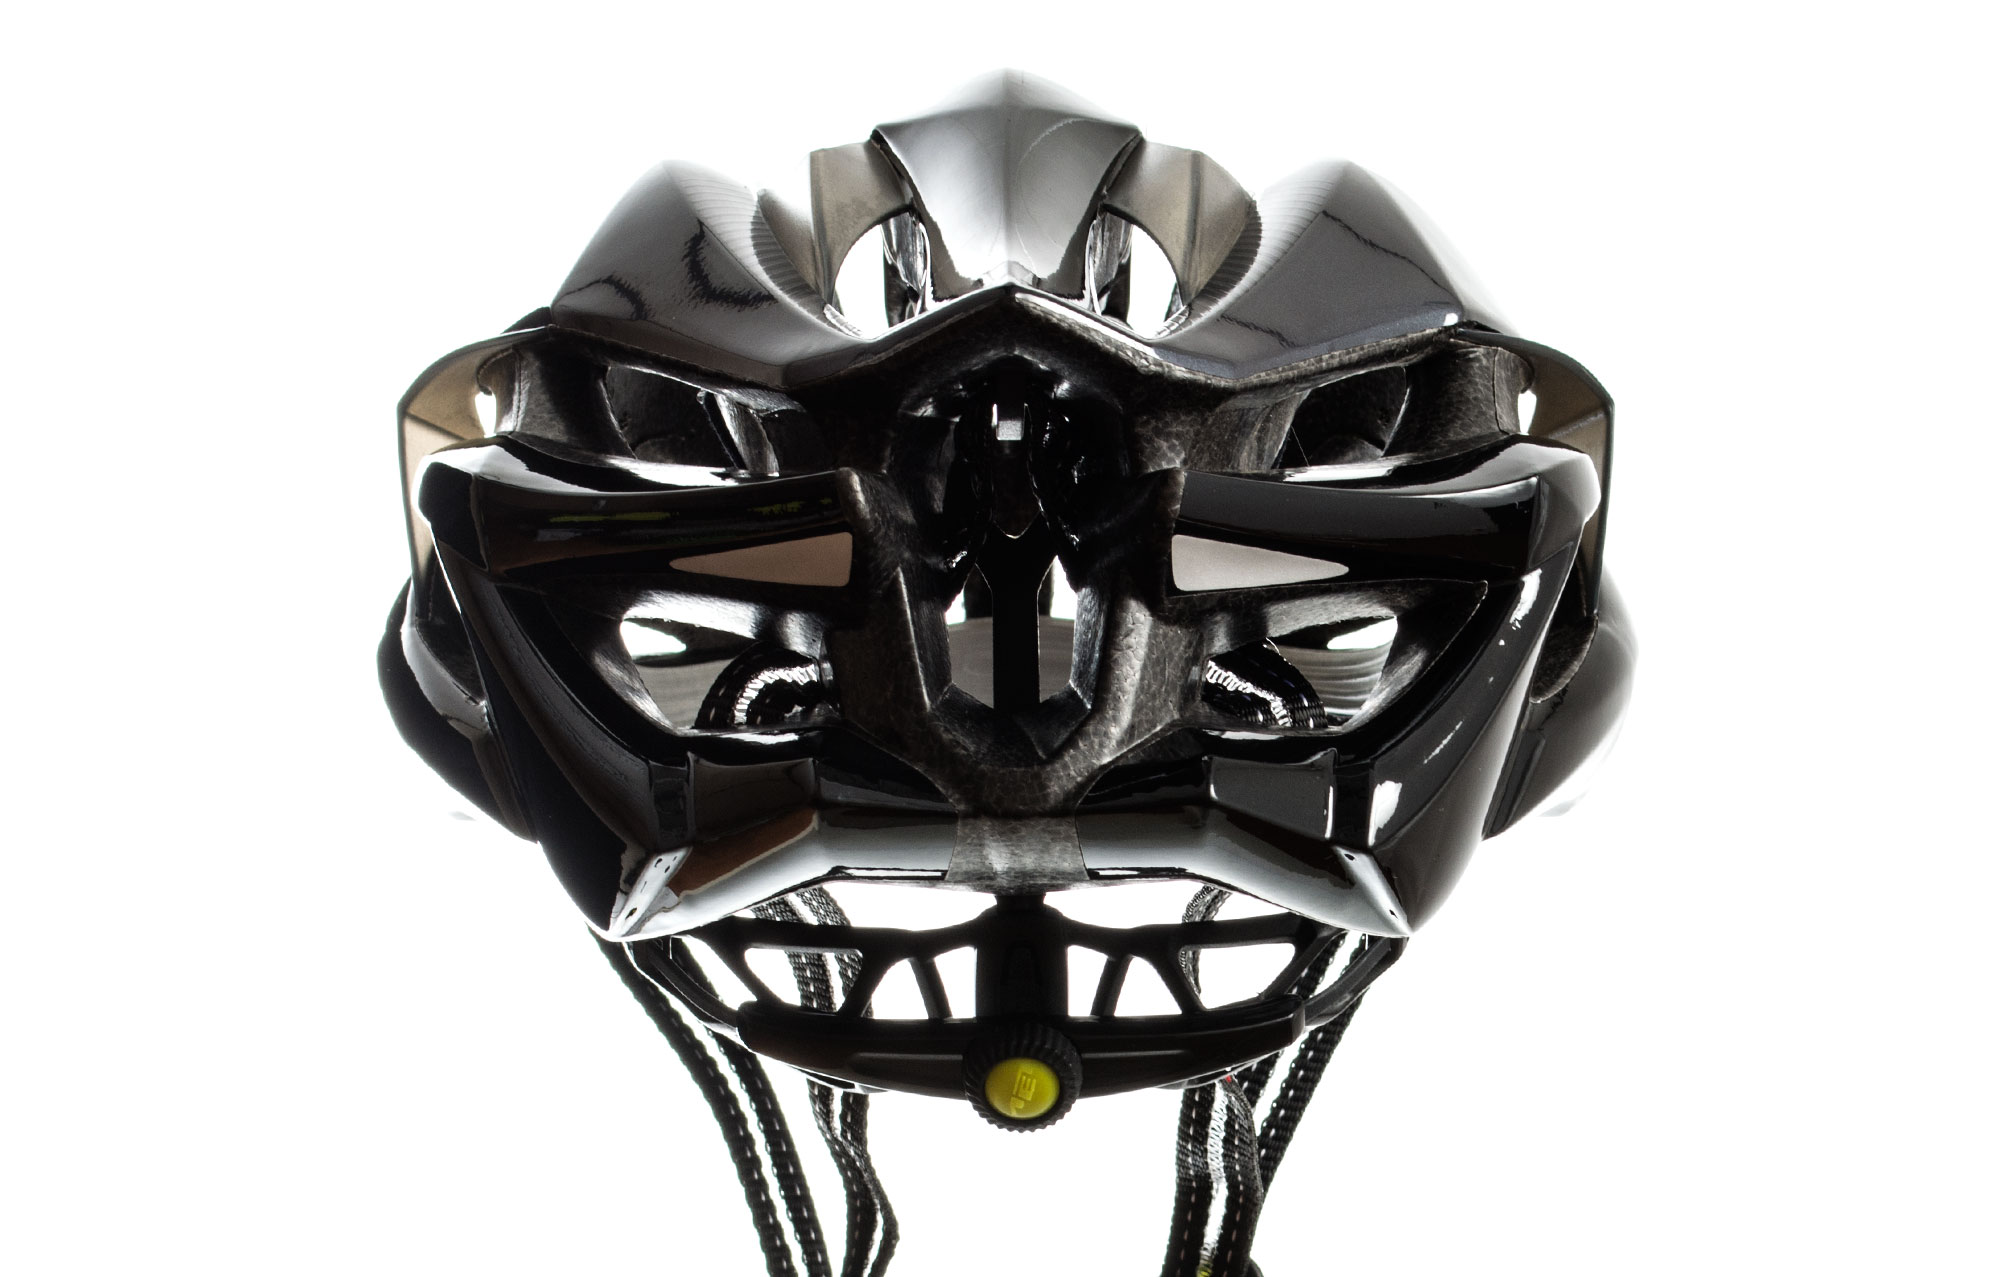 Met-Helmets - specialist in bicycle helmets for road, mountain bike